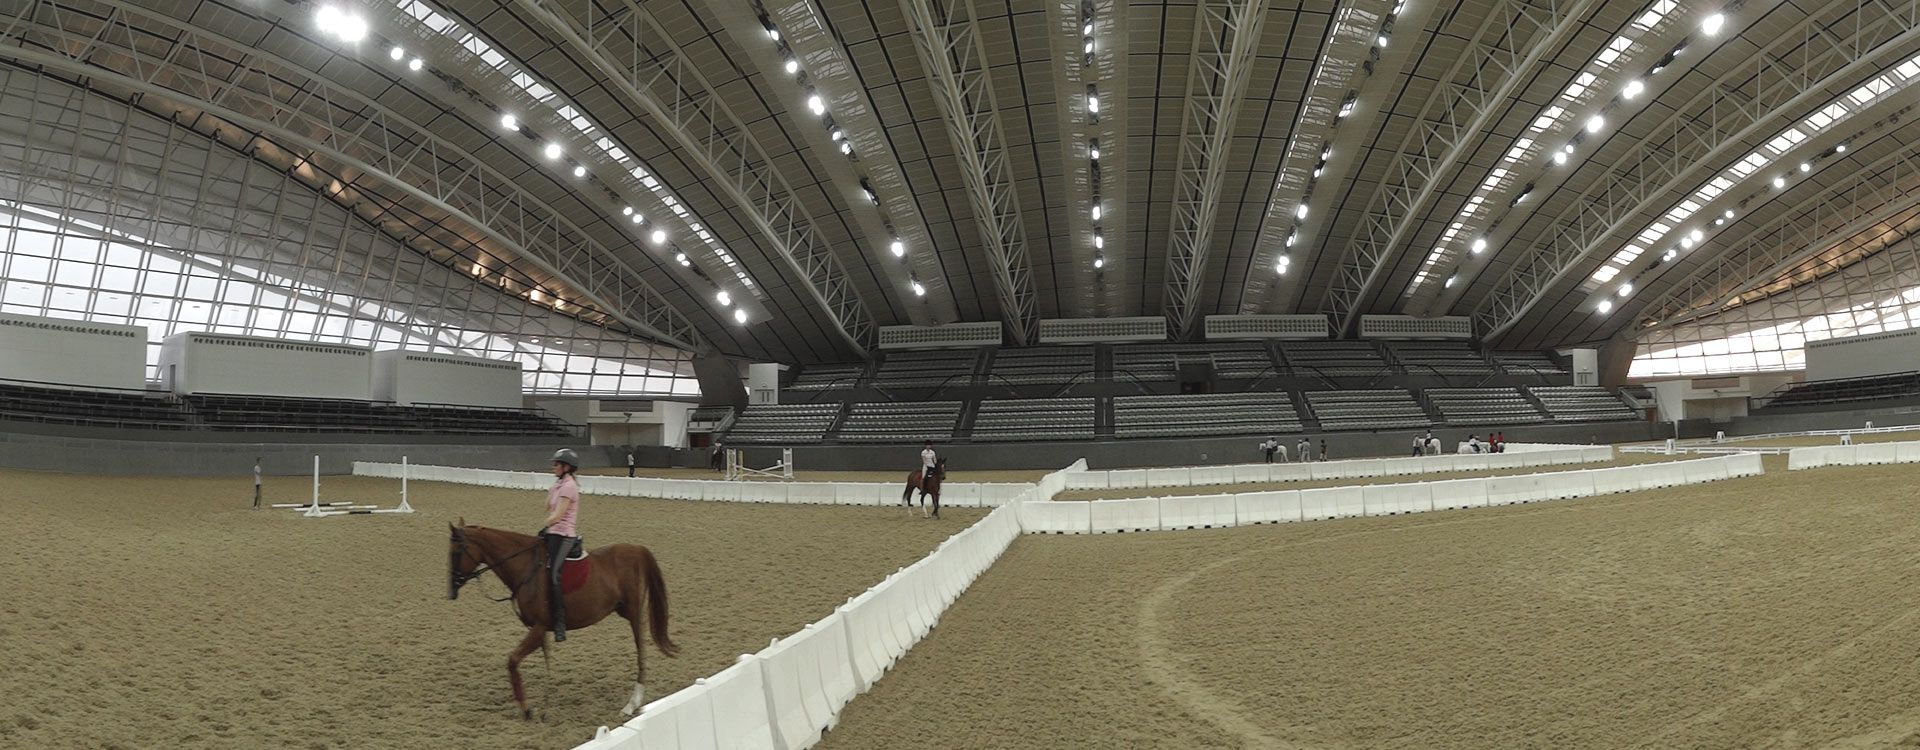 bnr-Al-Shaqab-Equestrian-Centre-Sports-and-Stadia